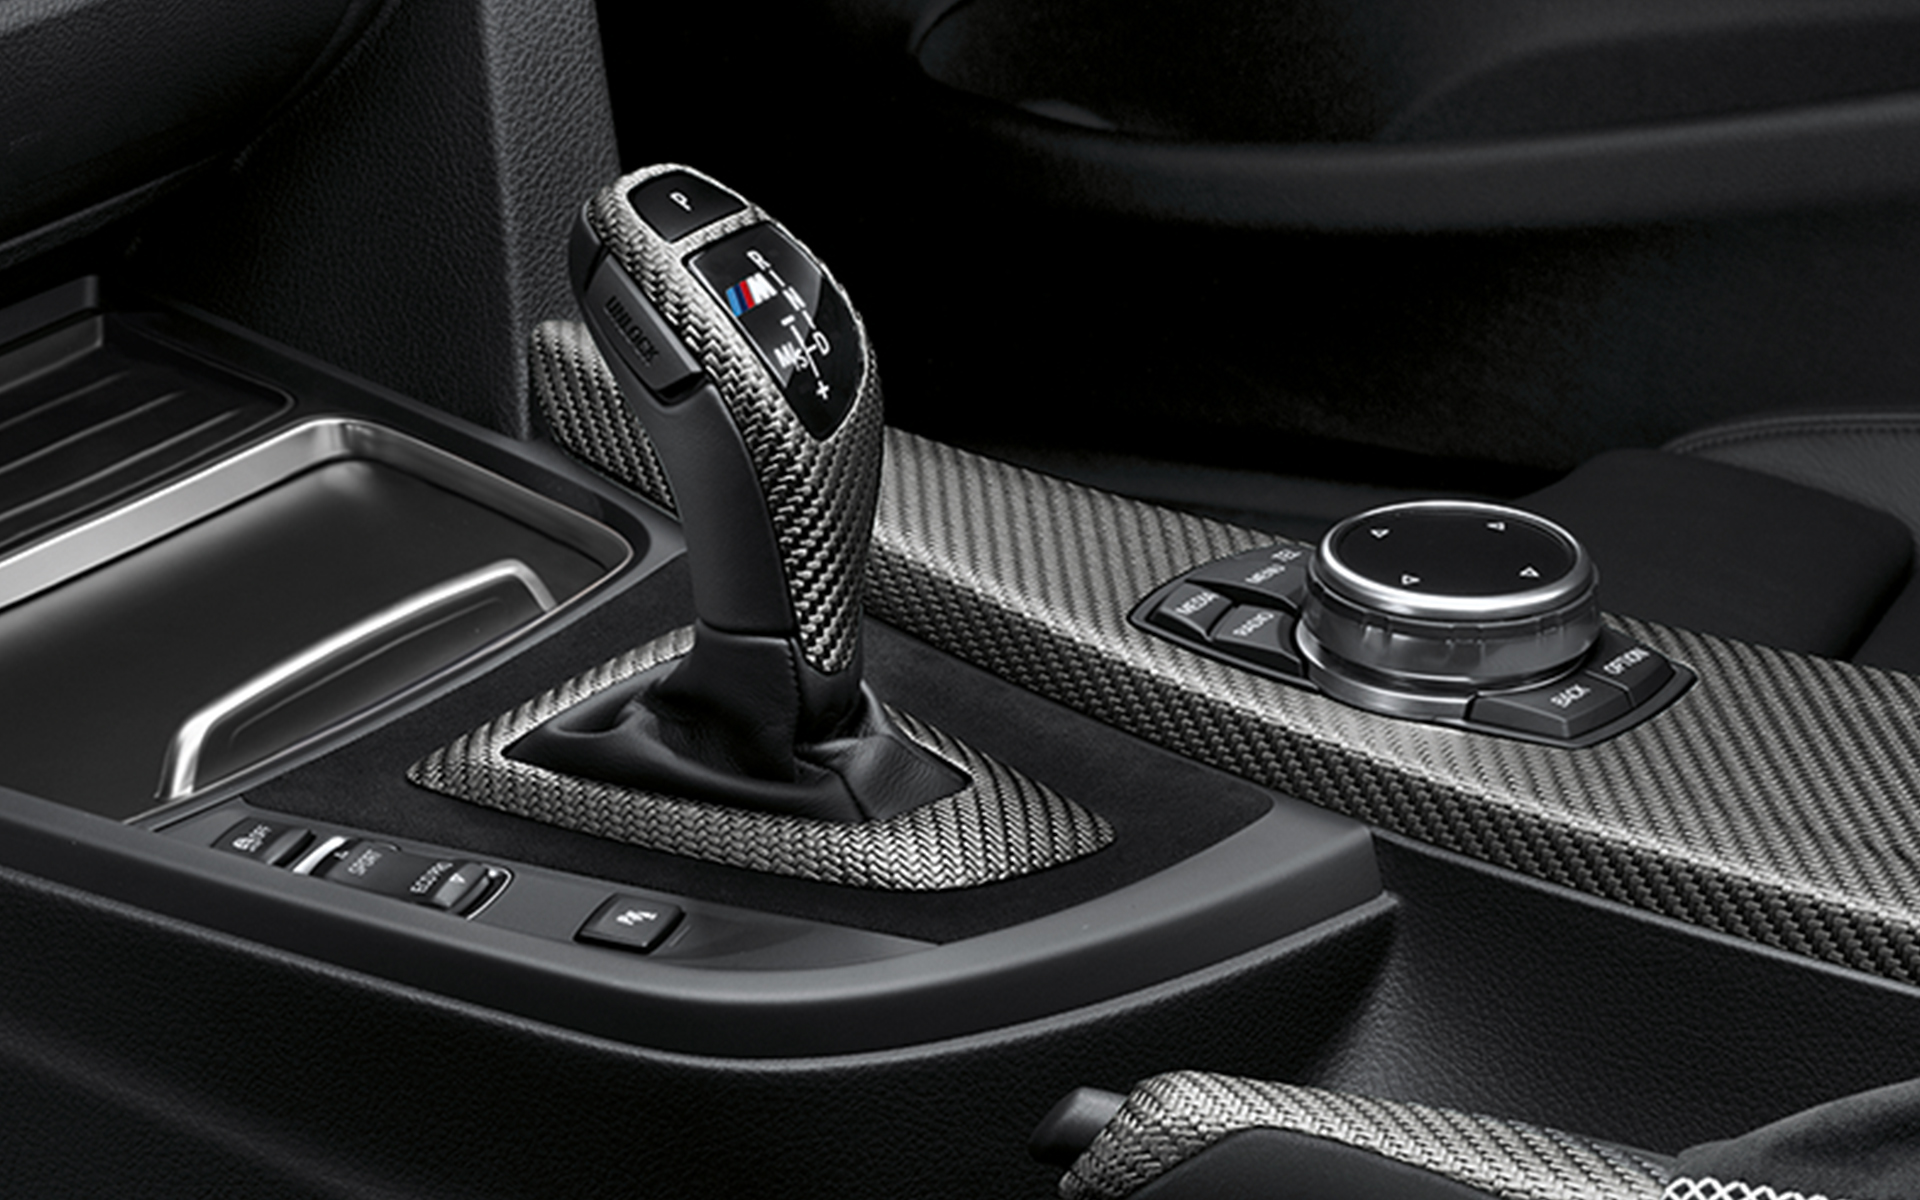 https://www.bmw.ie/content/dam/bmw/common/topics/offers-and-services/original-bmw-accessories/m-performance-parts/BMW-MPP-F90-interieur-gallery-1920x1200-05.jpg.asset.1509982152796.jpg